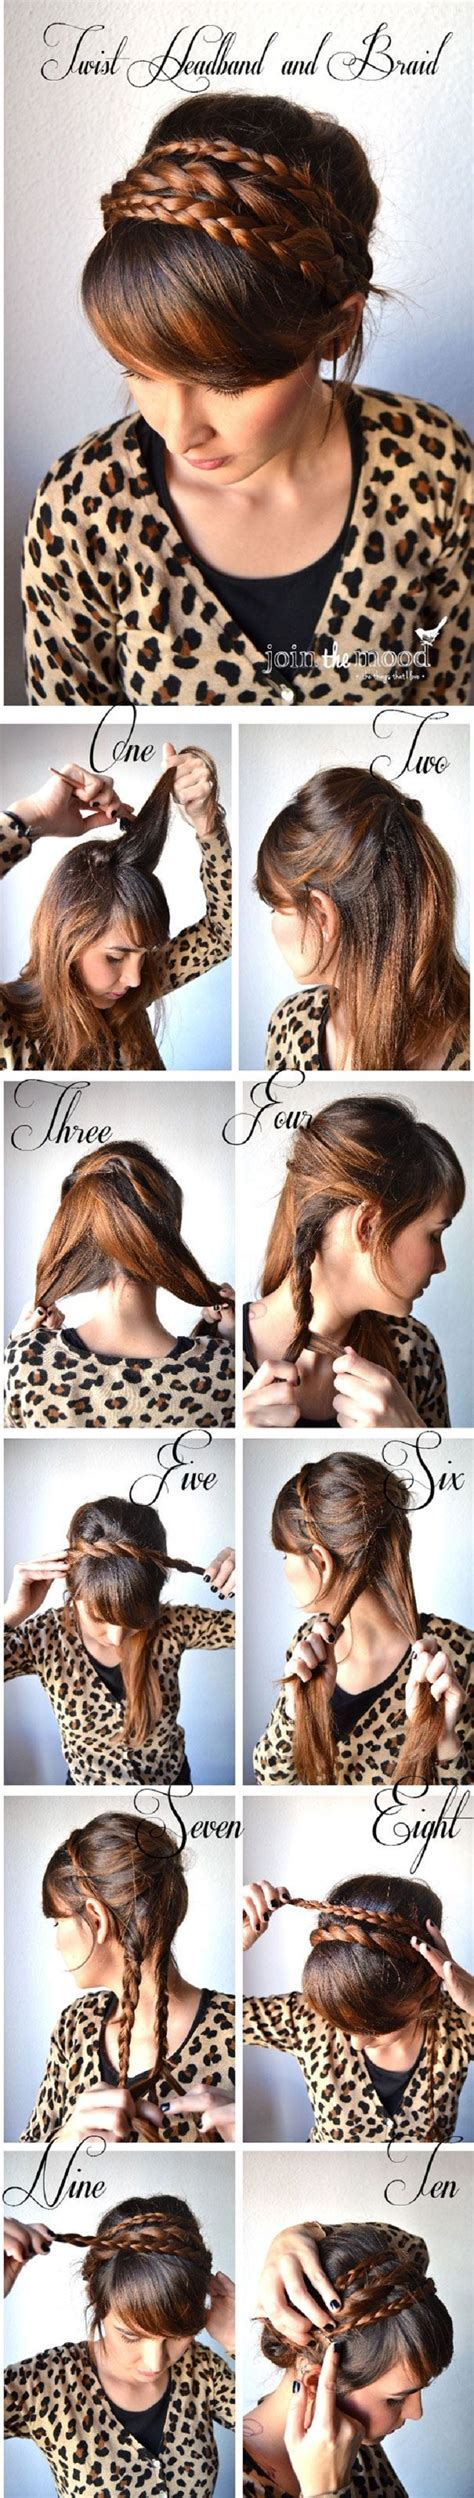 simple step by step winter hairstyle tutorials for diy twist headband and braid pictures photos and images